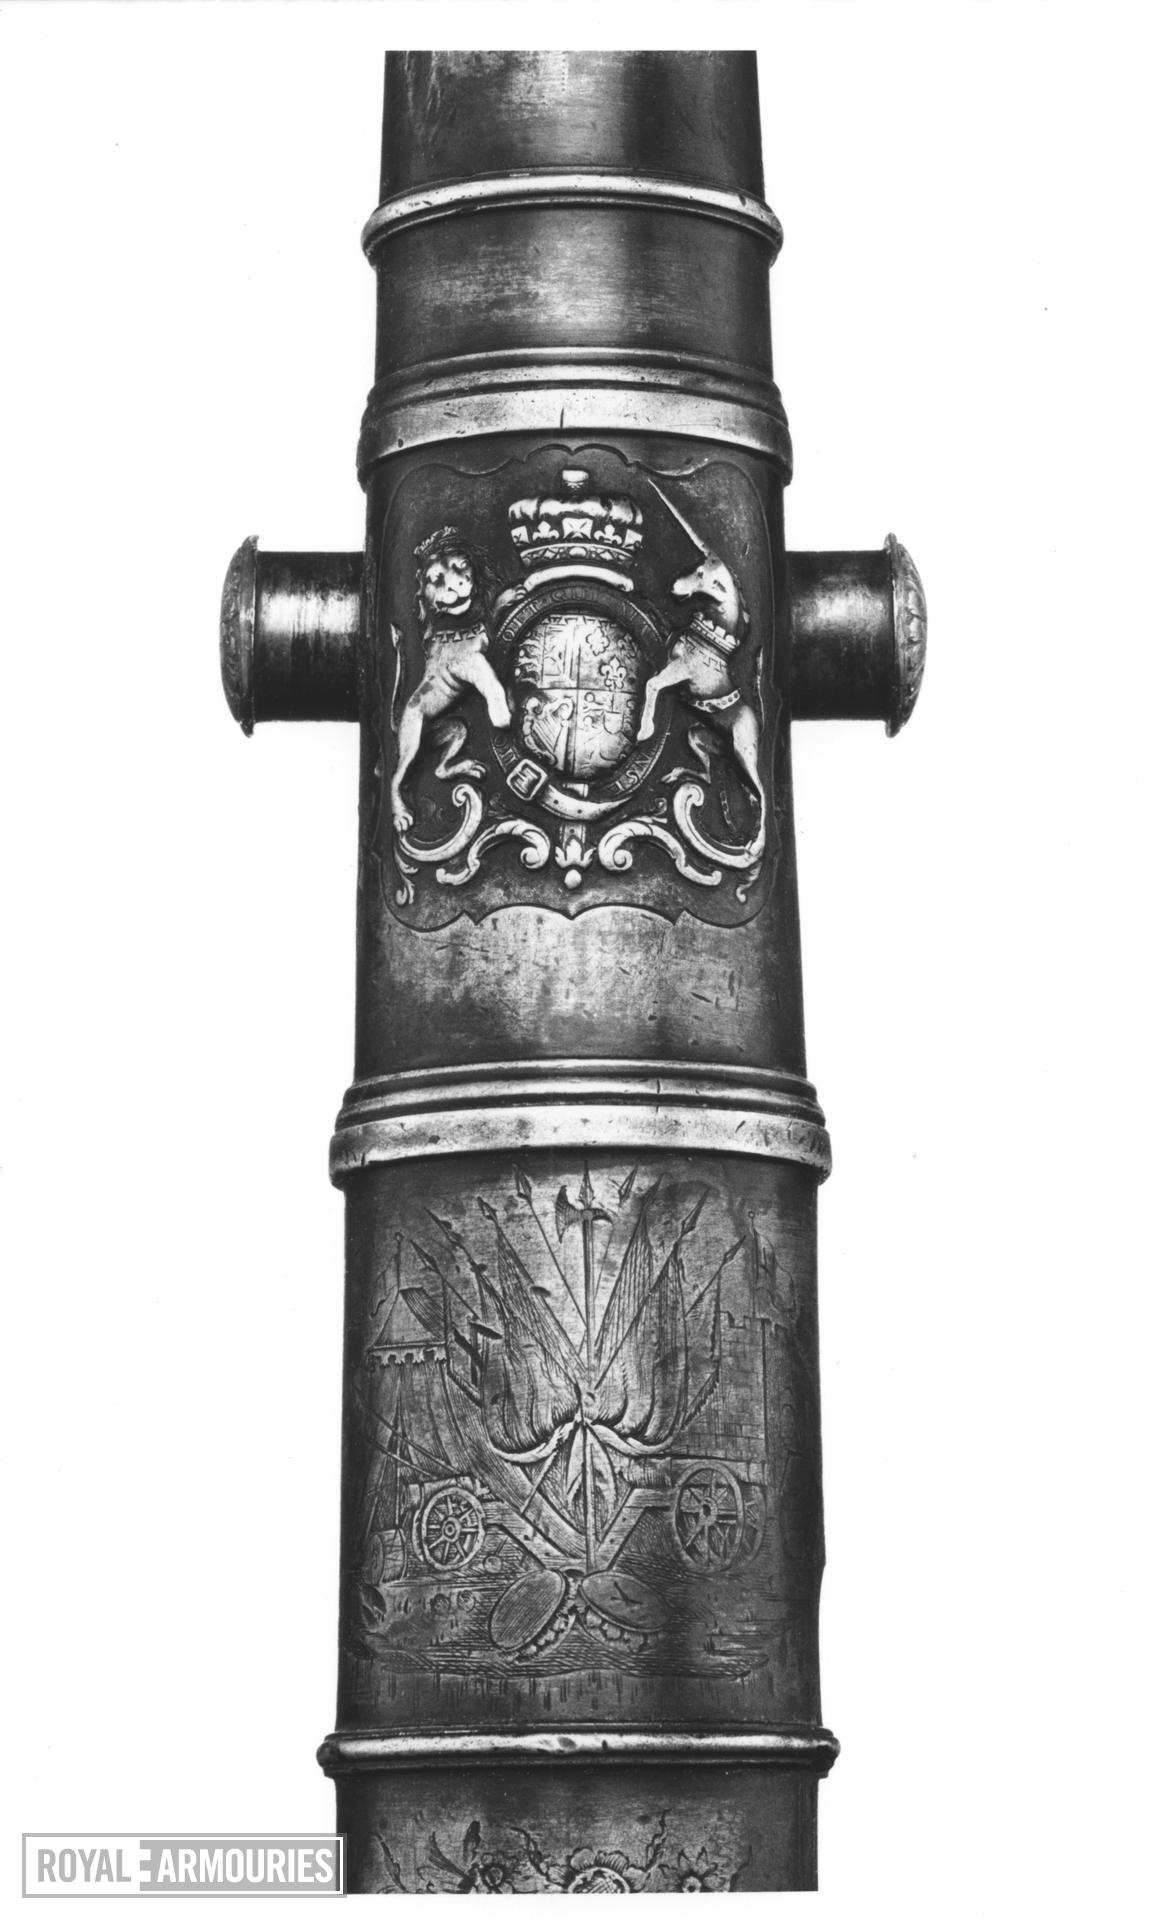 Miniature bronze gun One of two small cannon by W.Shepherd (see also XIX.315)